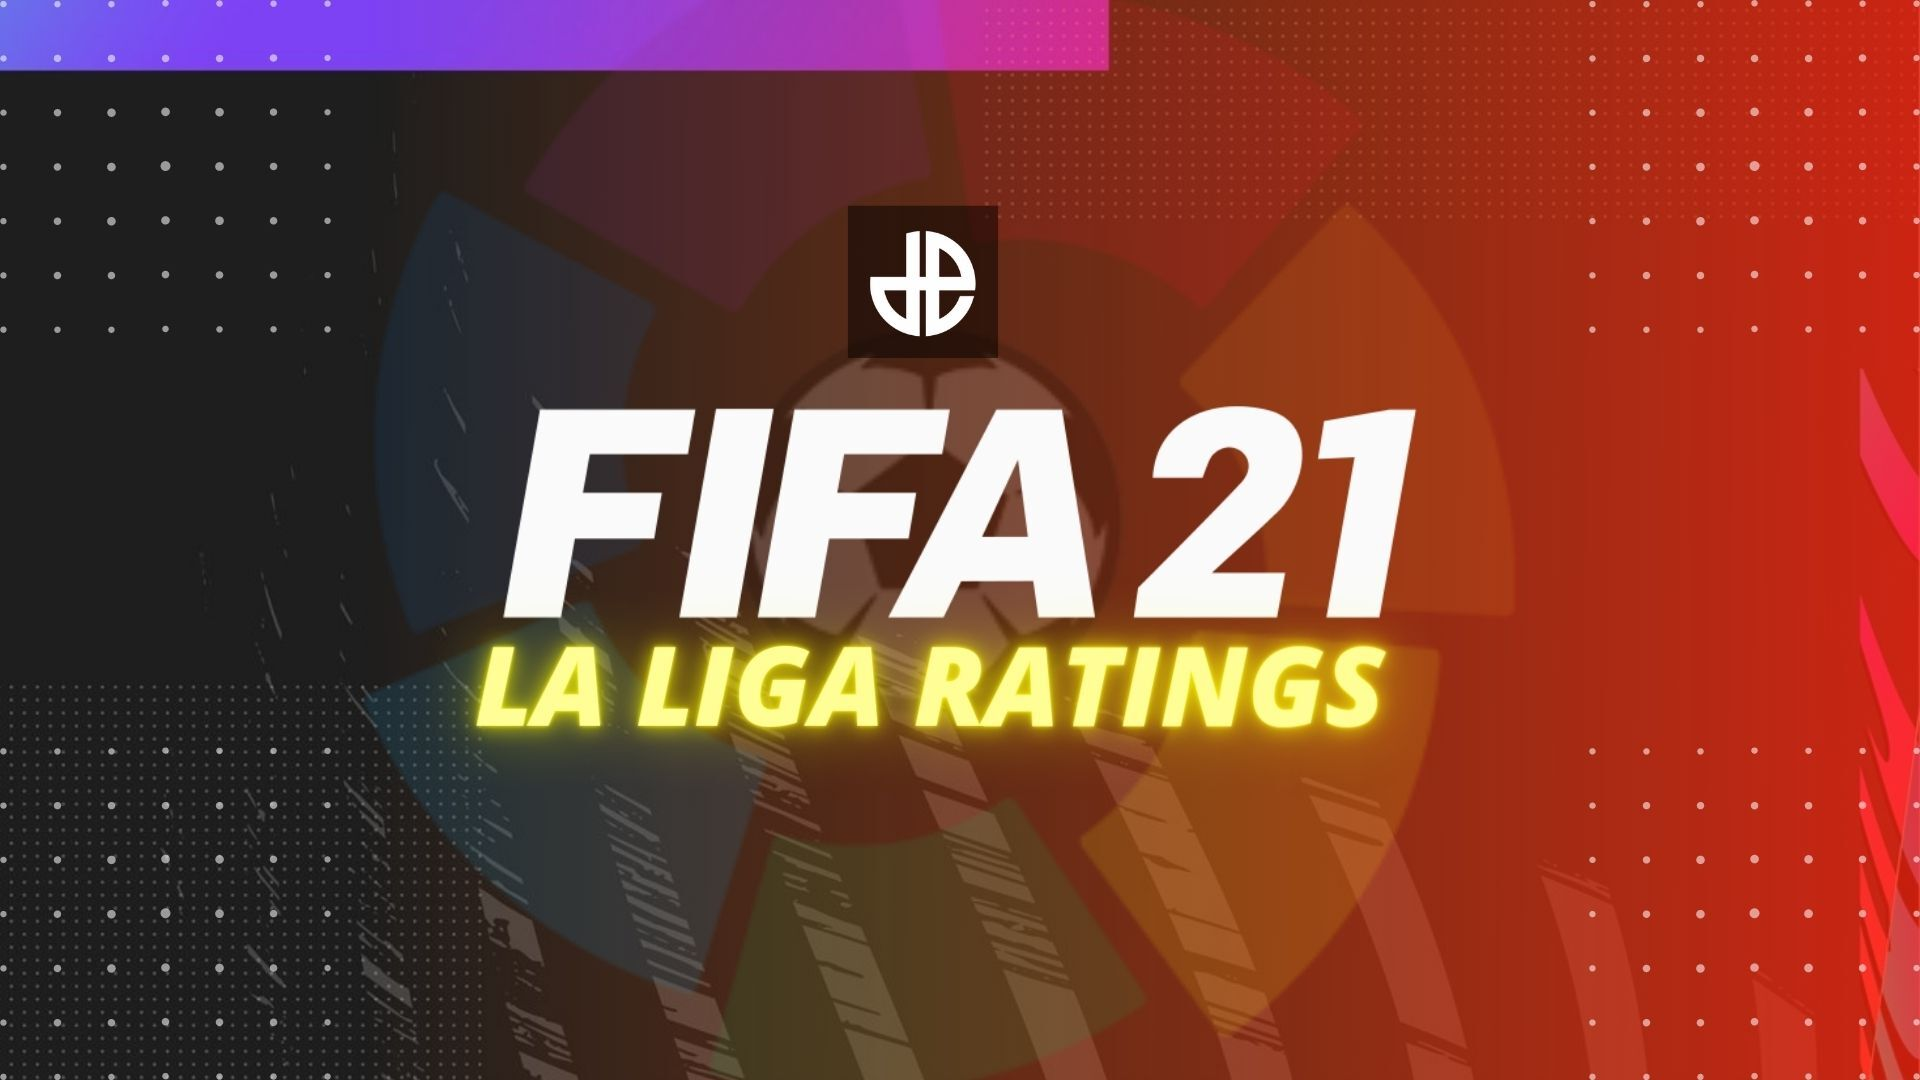 FIFA 21 La Liga ratings